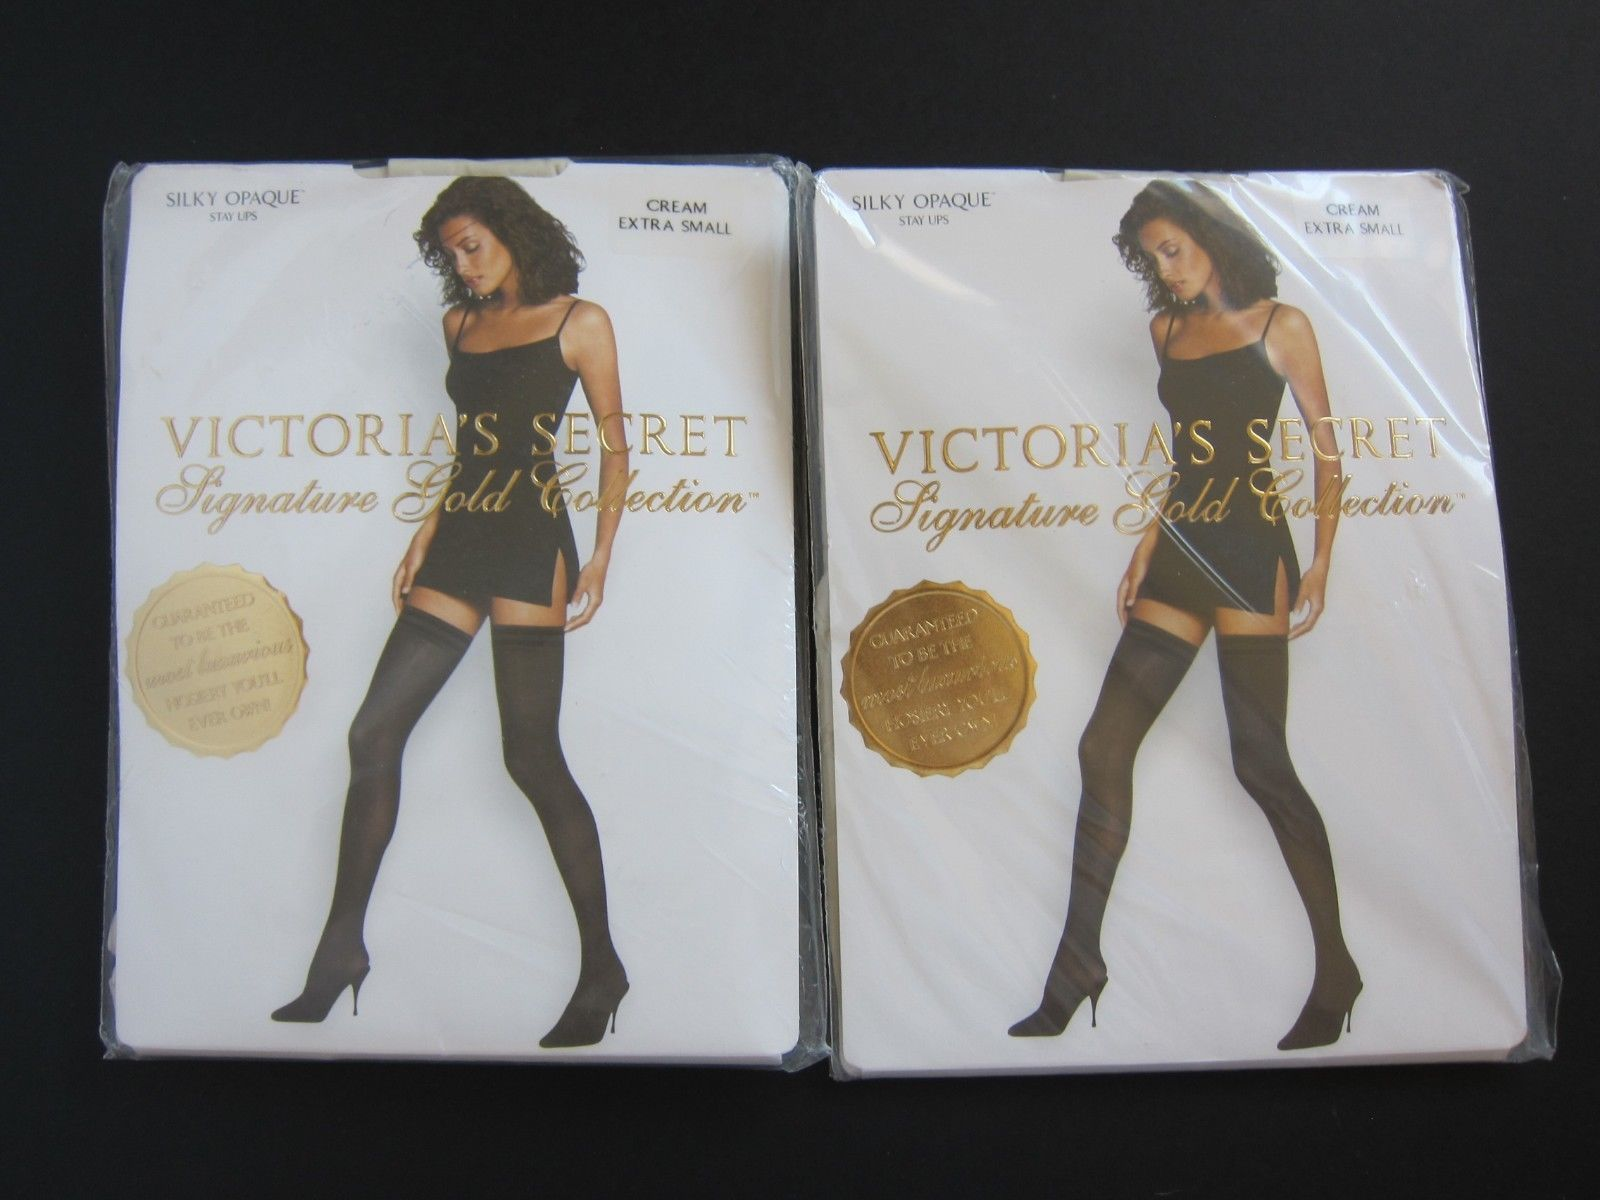 71b84cbd27 2 Victoria s Secret VINTAGE Signature Gold and 50 similar items. S l1600